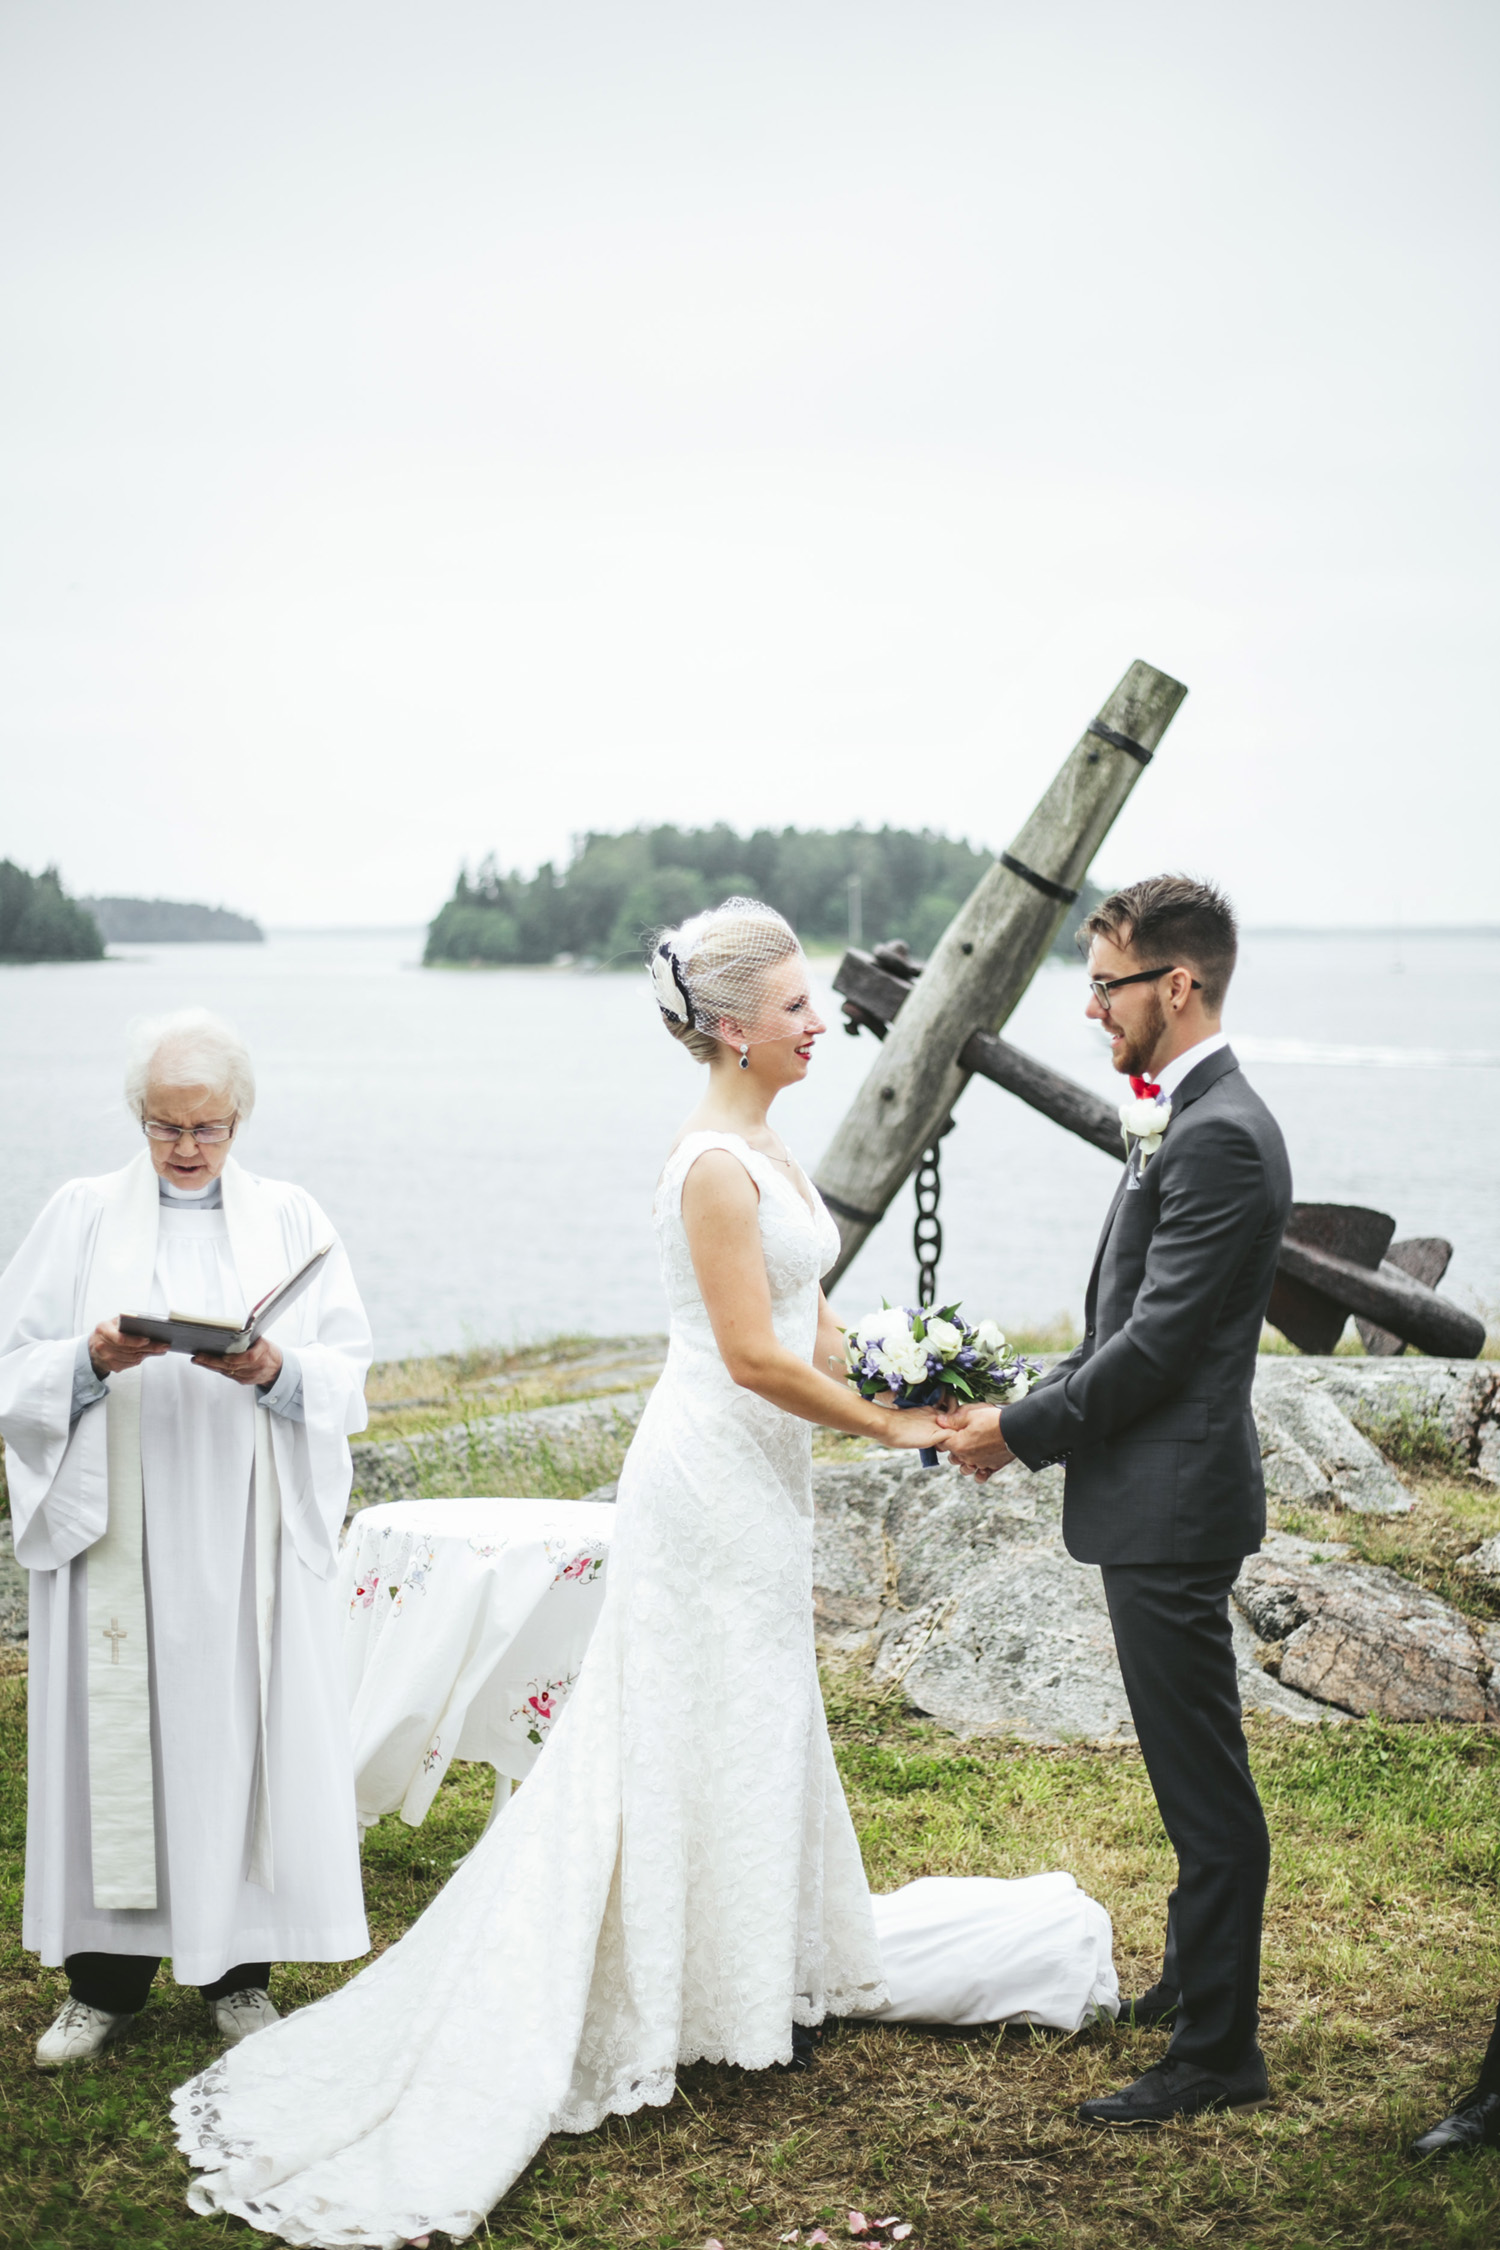 Brandon_werth_Sweden_wedding_Photographer_baltic_sea_34.jpg